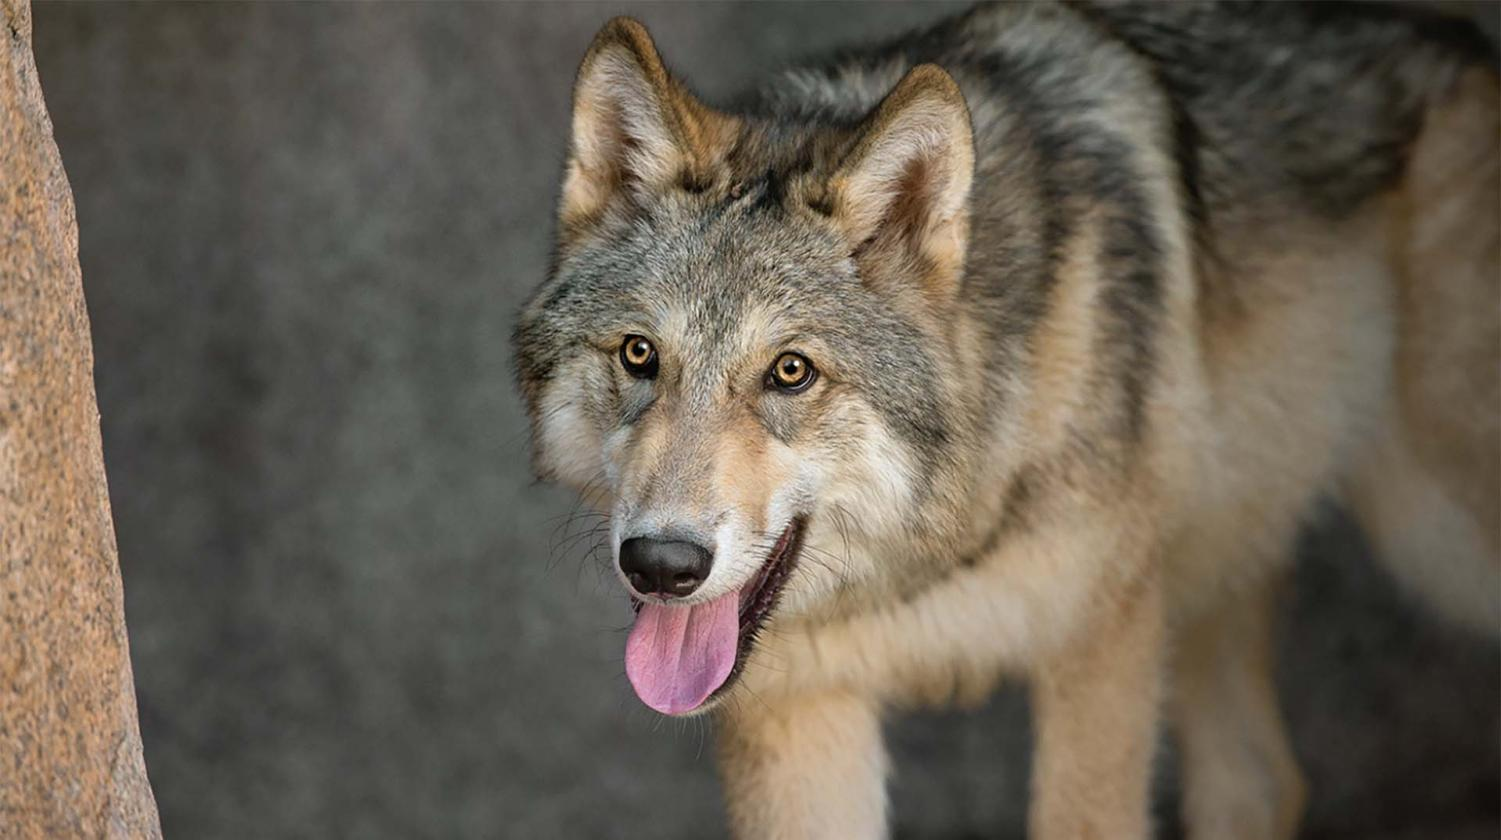 http://animals.sandiegozoo.org/sites/default/files/2016-12/Wolf_ZN.jpg